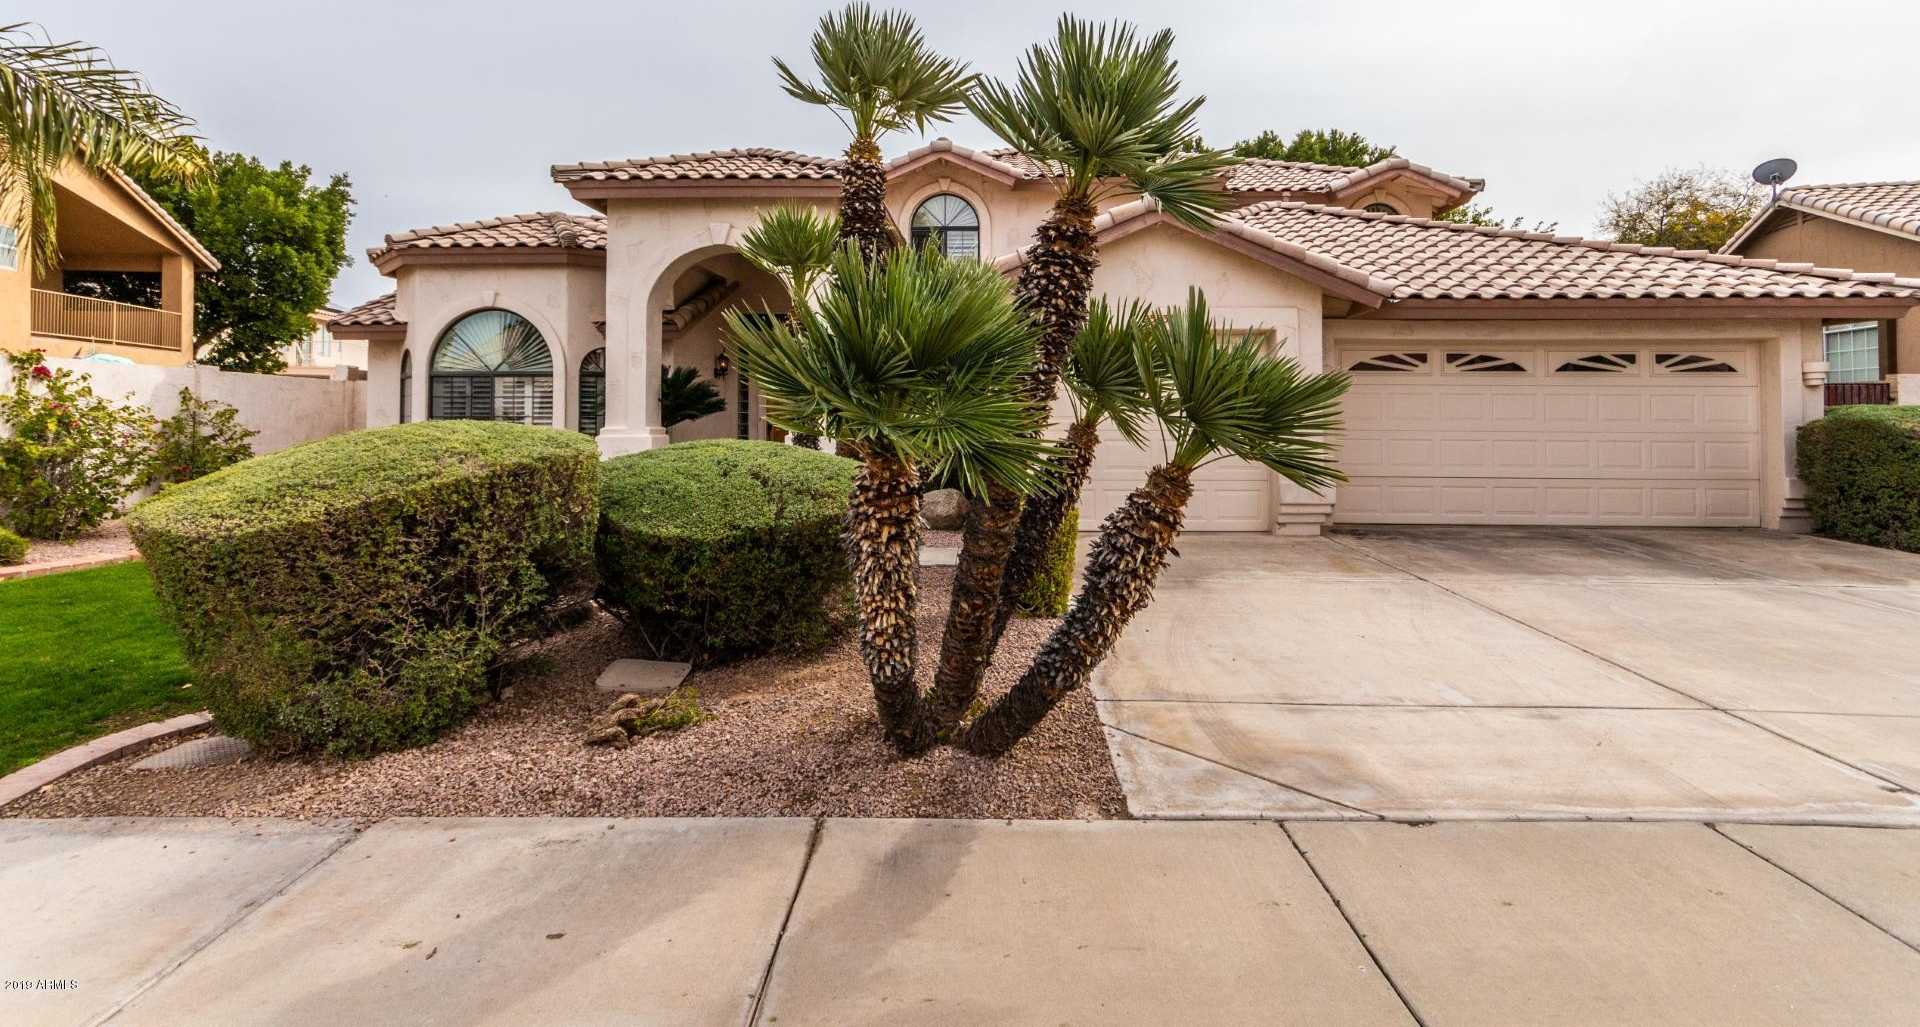 $489,900 - 5Br/3Ba - Home for Sale in Pinnacle Hill Lot 1-259 Tr A-o, Glendale